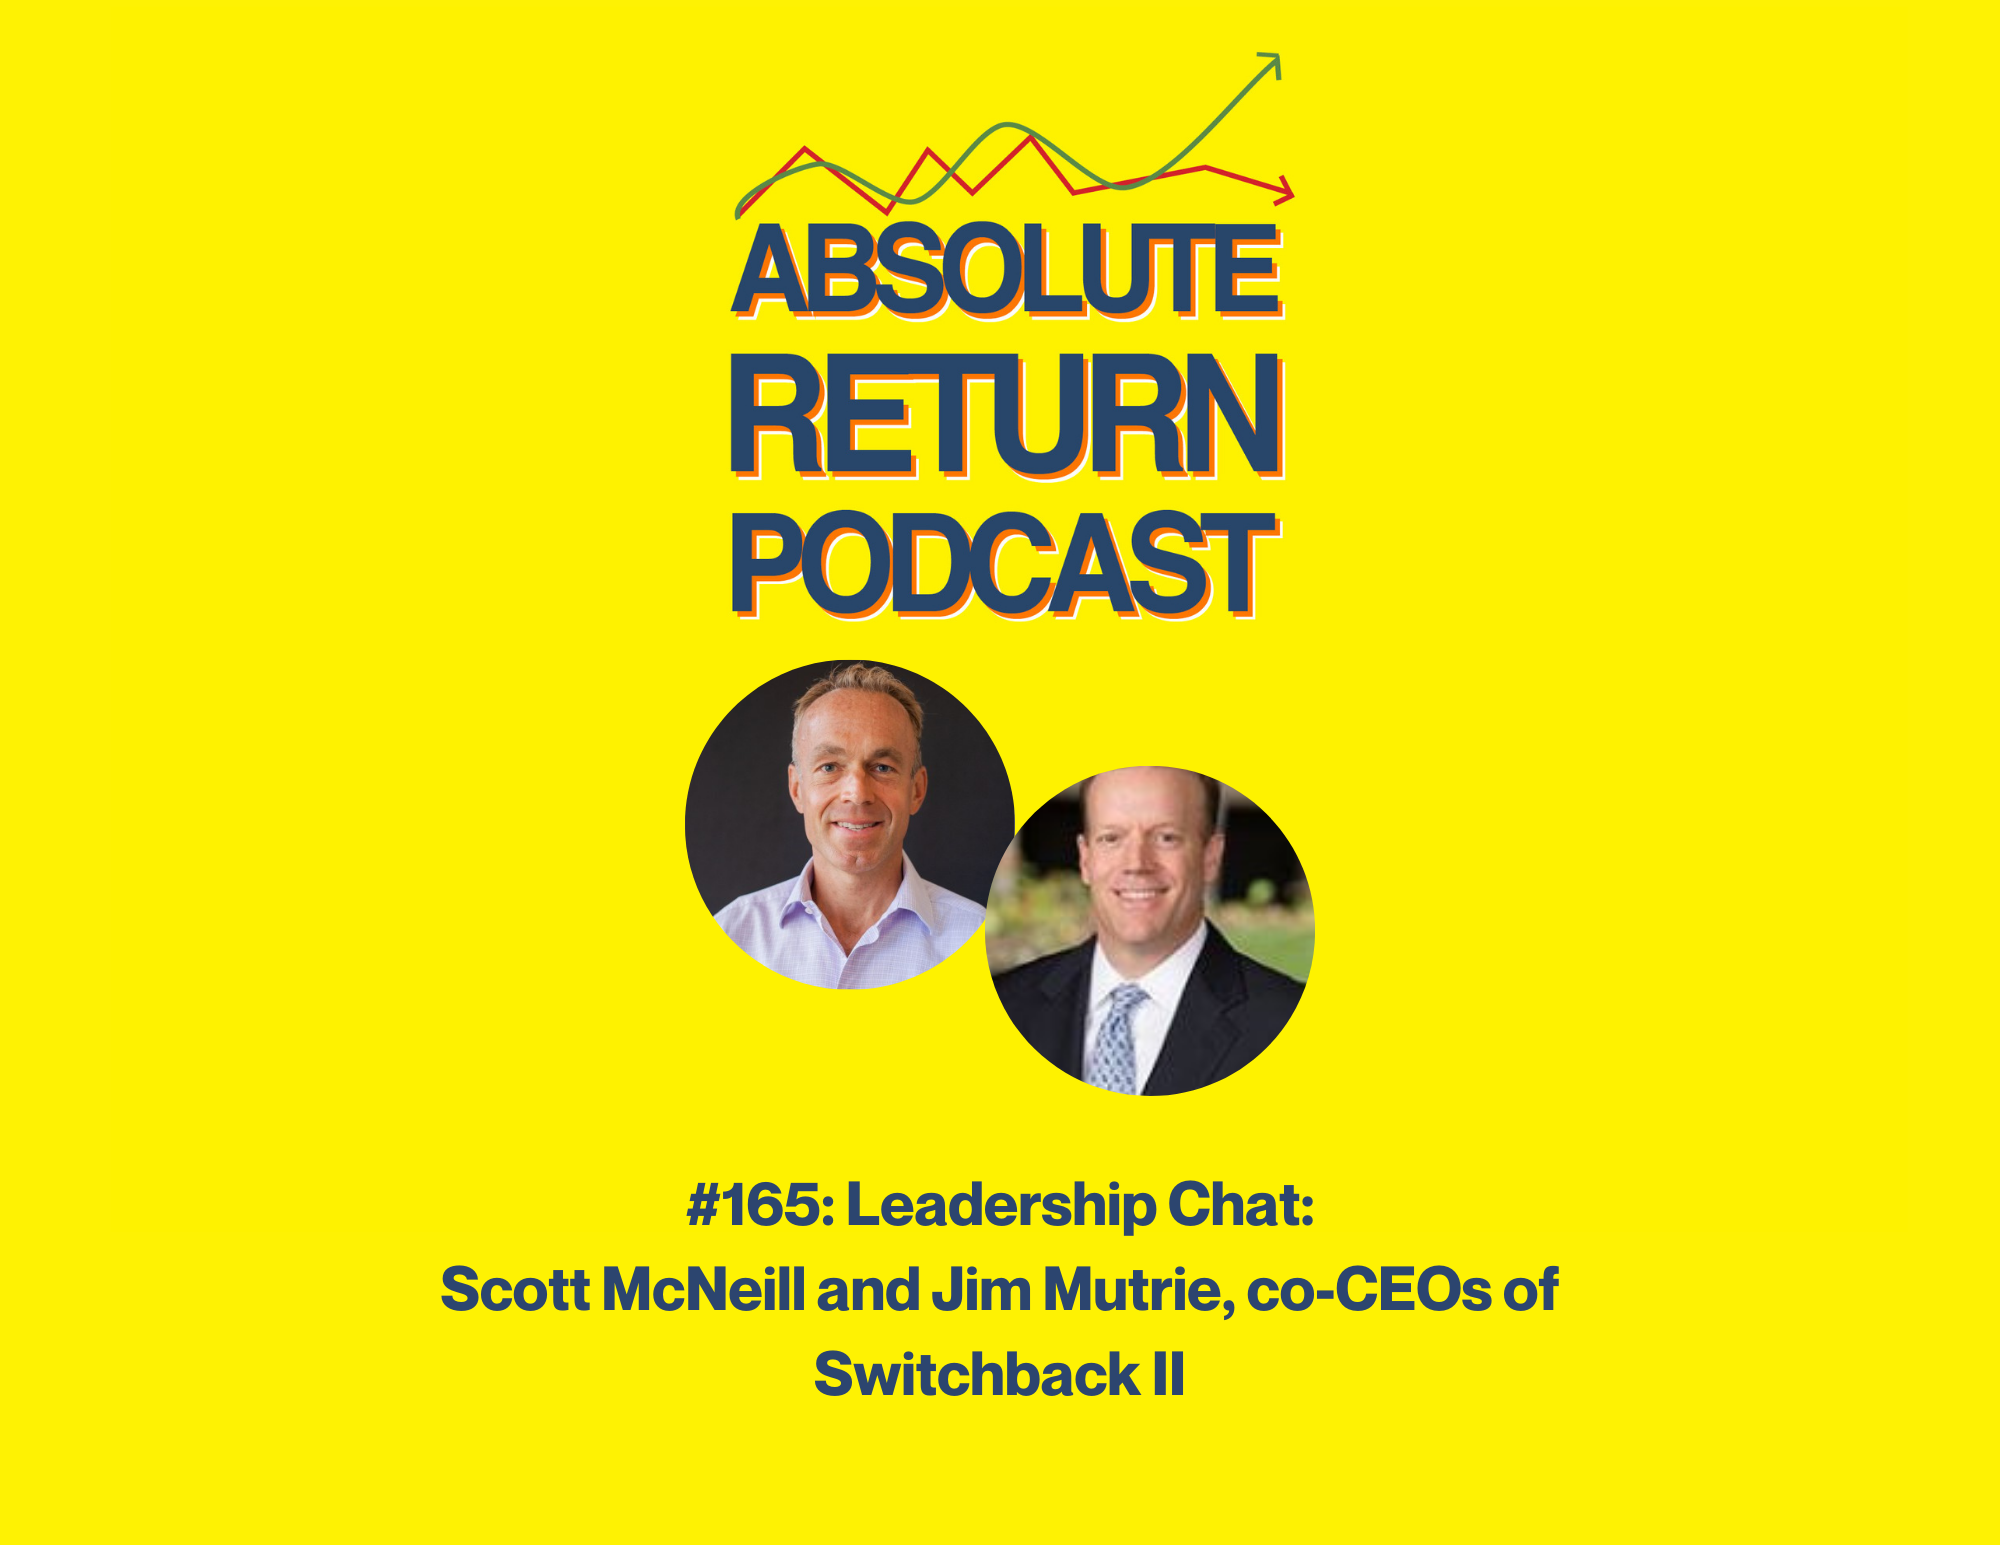 Absolute Return Podcast #165: Leadership Chat: Scott McNeill And Jim Mutrie, Co-CEOs Of Switchback II